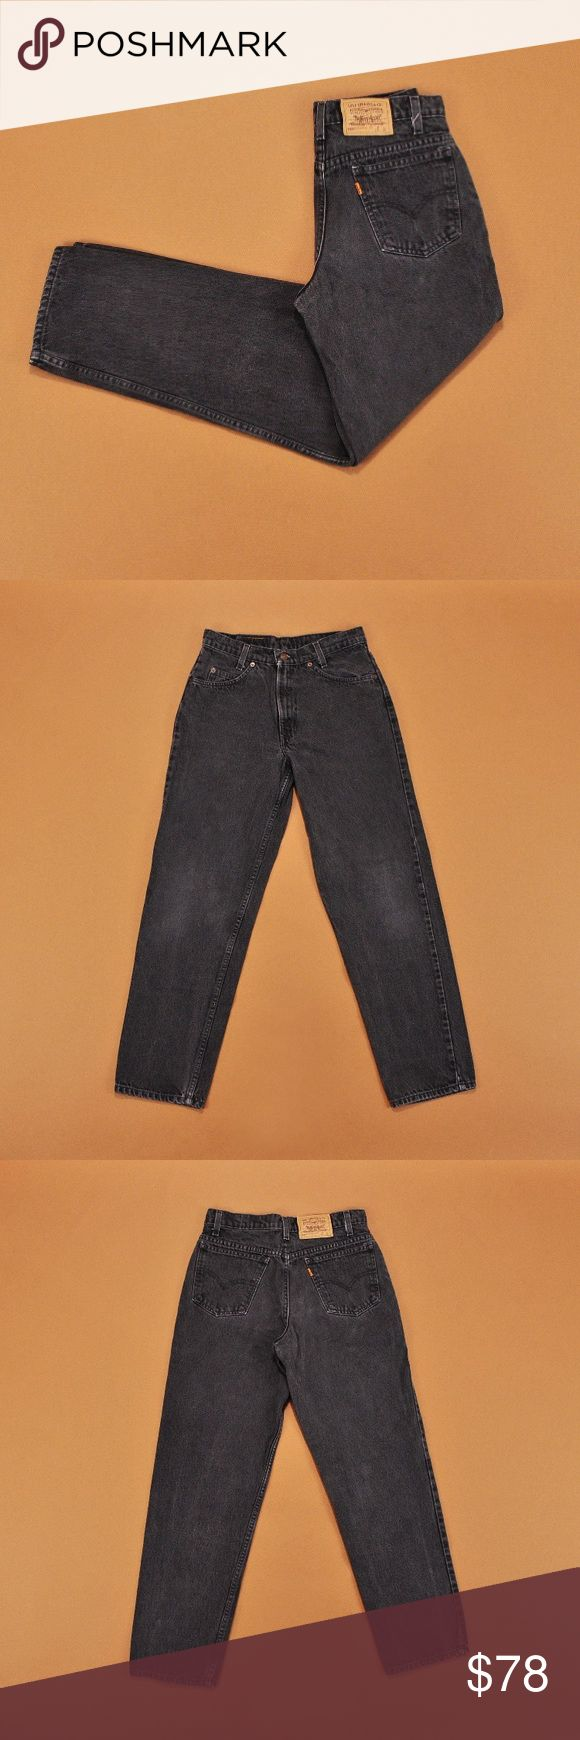 Vintage High Waisted Black Levi's (XS-M) High quality vintage black high Waisted Levi jeans. 100% Genuine Levi's. The perfect pair of mom jeans. Since these are a vintage item some pair have had tags removed but all Jeans are sized to be true to fit! Levi's Jeans